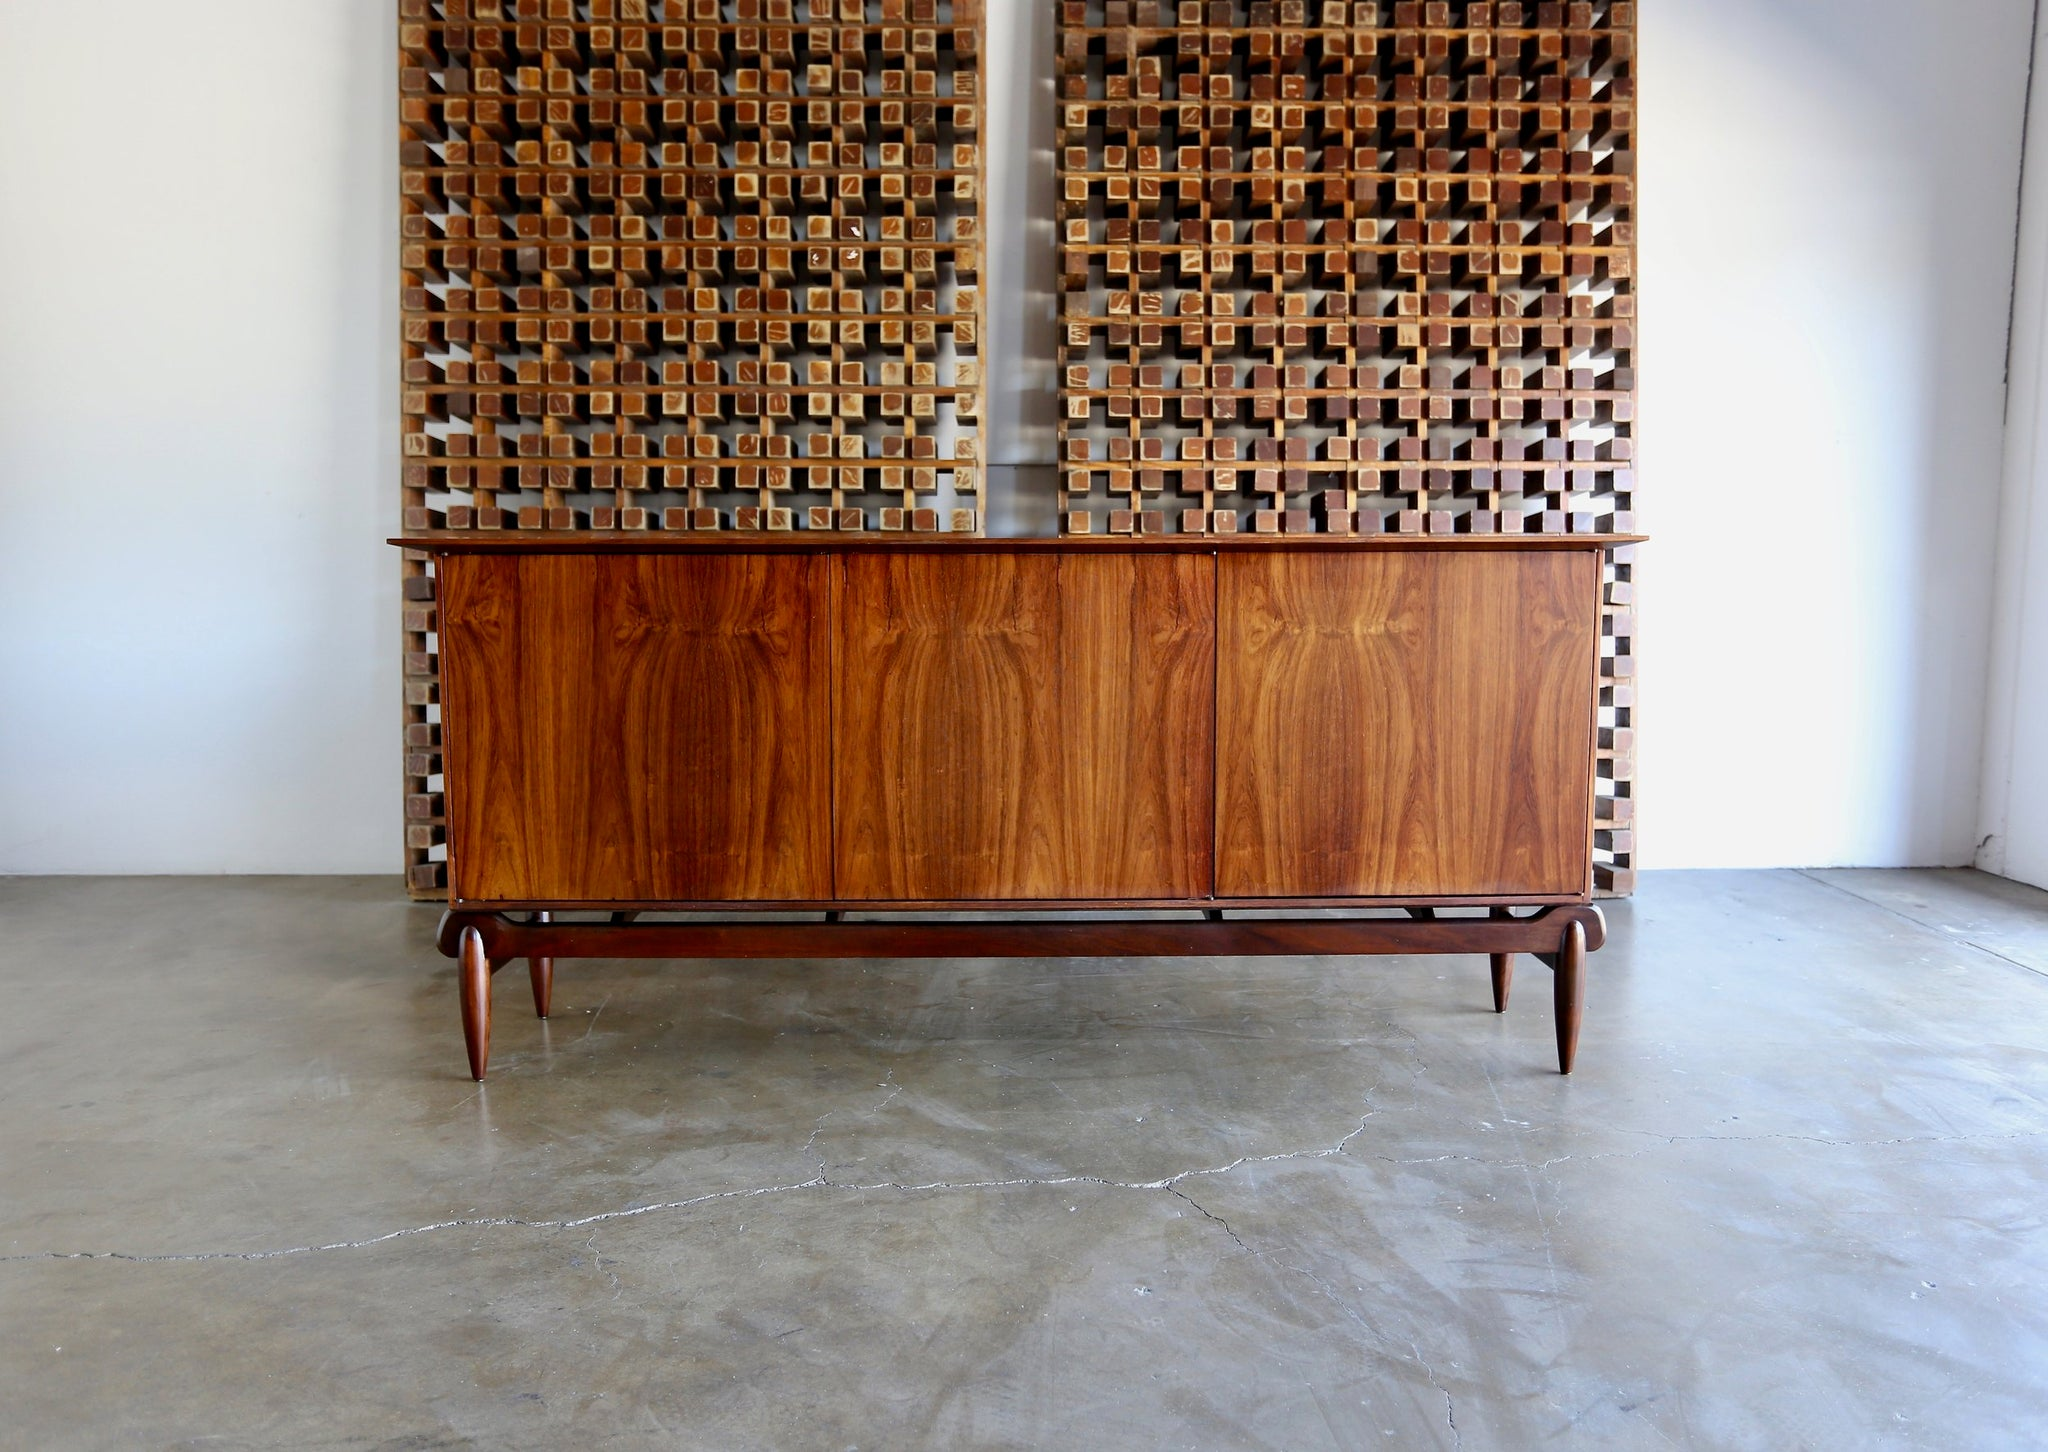 = SOLD = Rare Rosewood Credenza by Greta Grossman for Glenn of California